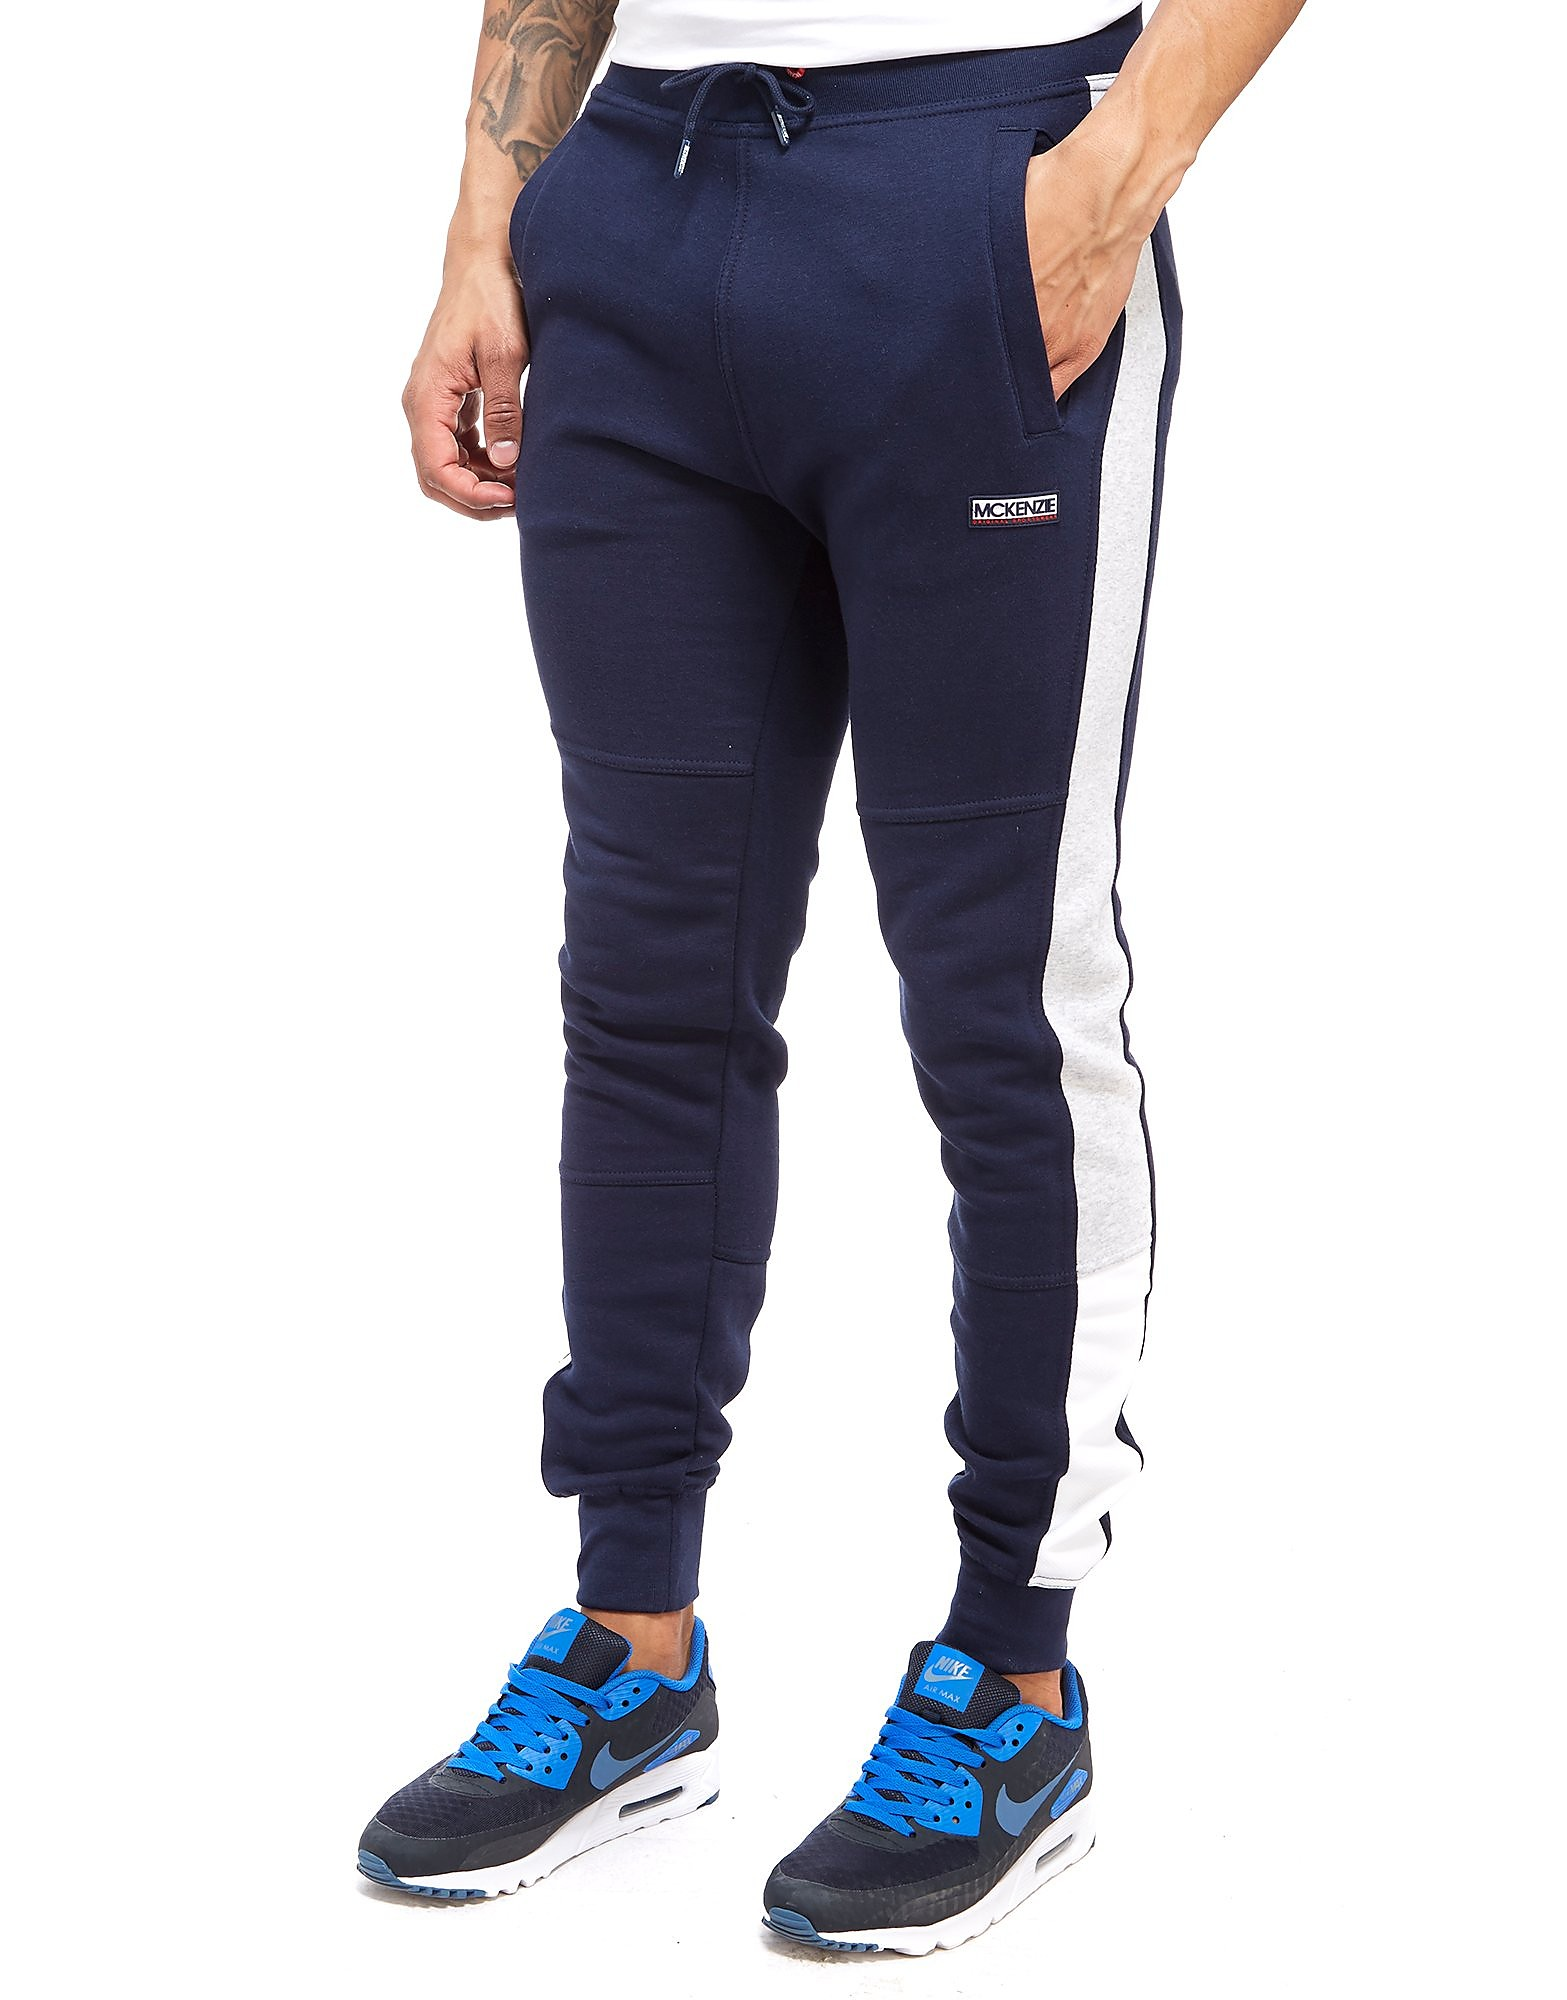 McKenzie Islington Fleece Pants